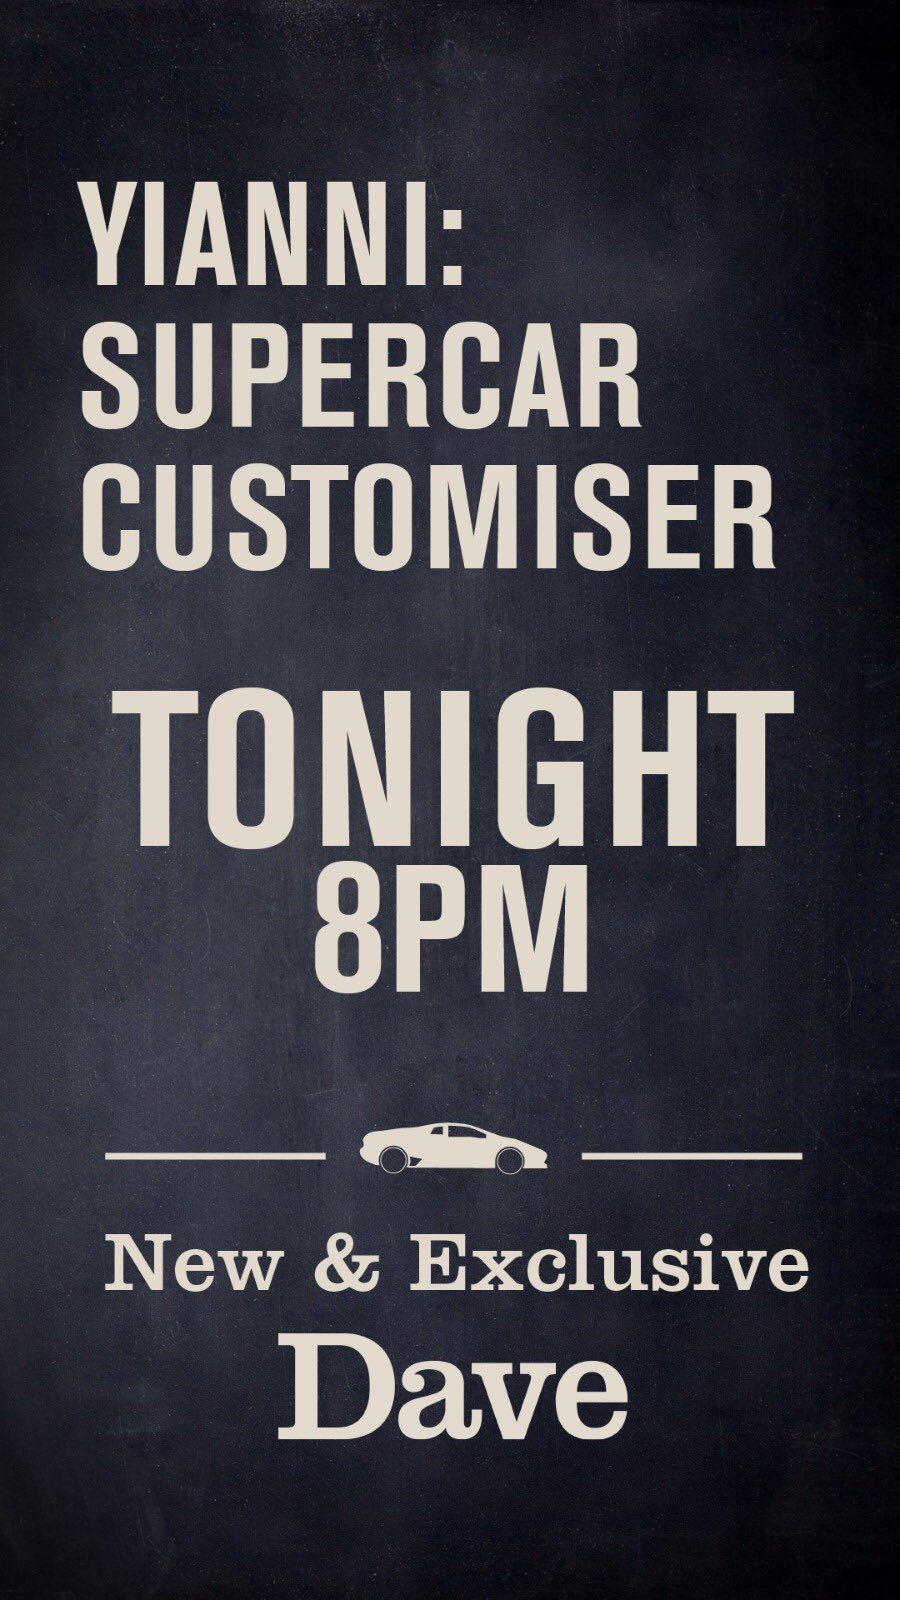 RT @yiannimize: The day has arrived... #yiannisupercarcustomiser https://t.co/A08eUtBS5d